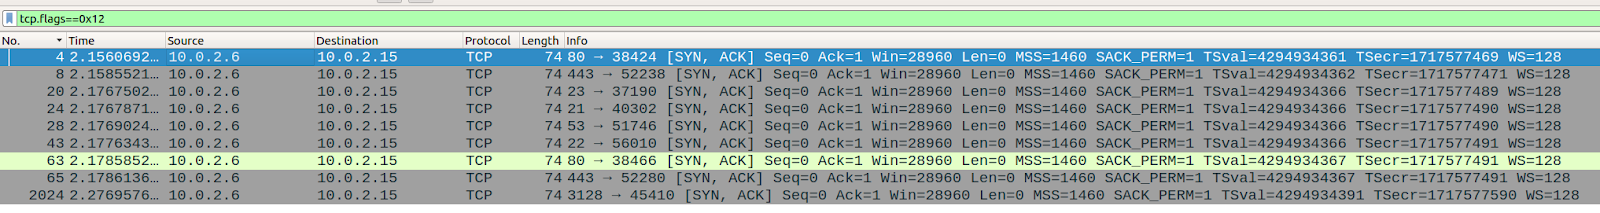 A screenshot of Wireshark showing only a few rows of returning SYN, ACK traffic